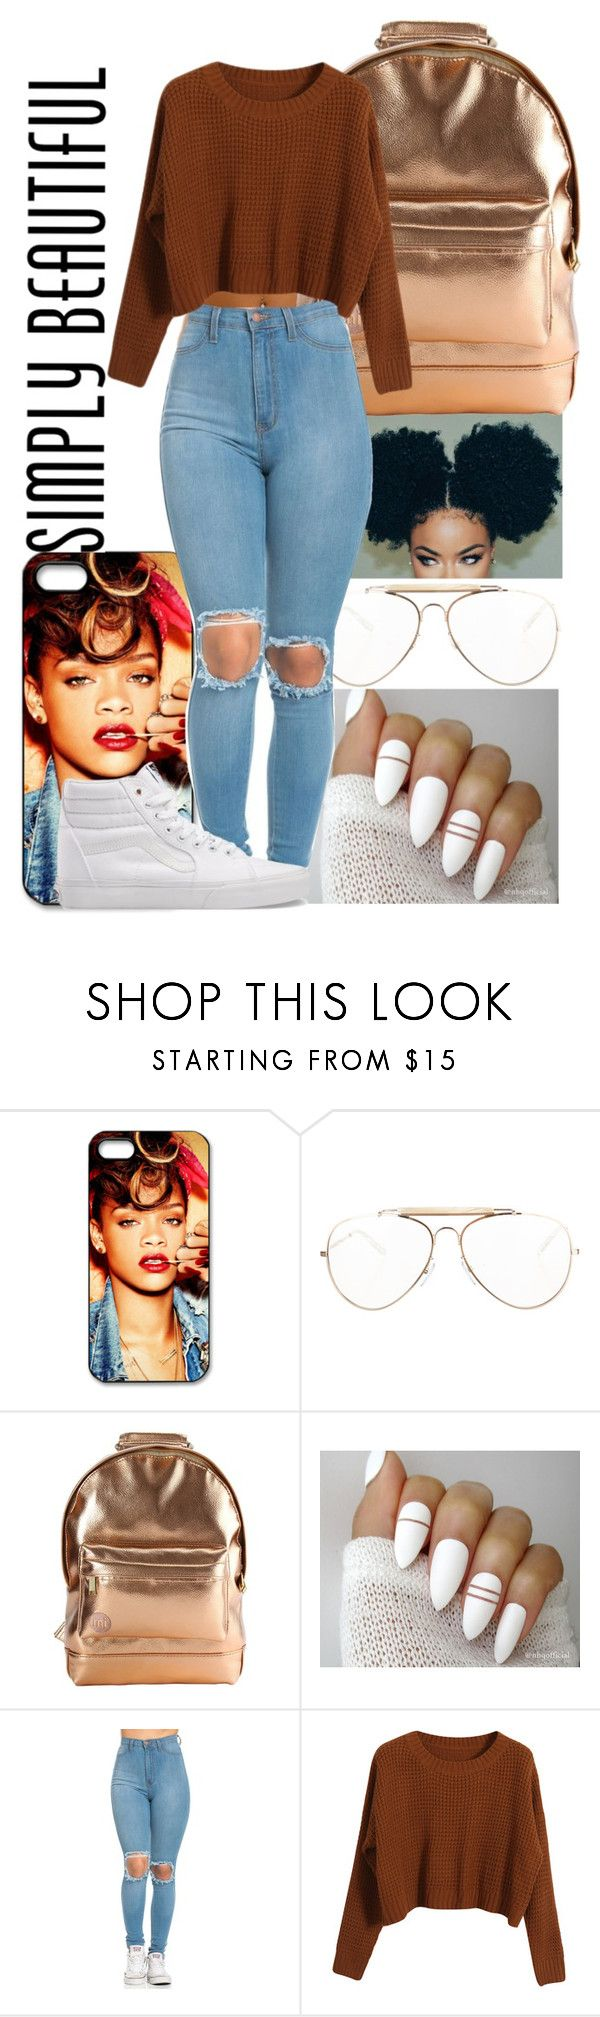 """Simply Beautiful"" by hellacurlz2000 on Polyvore featuring CÉLINE, Mi-Pac, Chicnova Fashion and Vans"